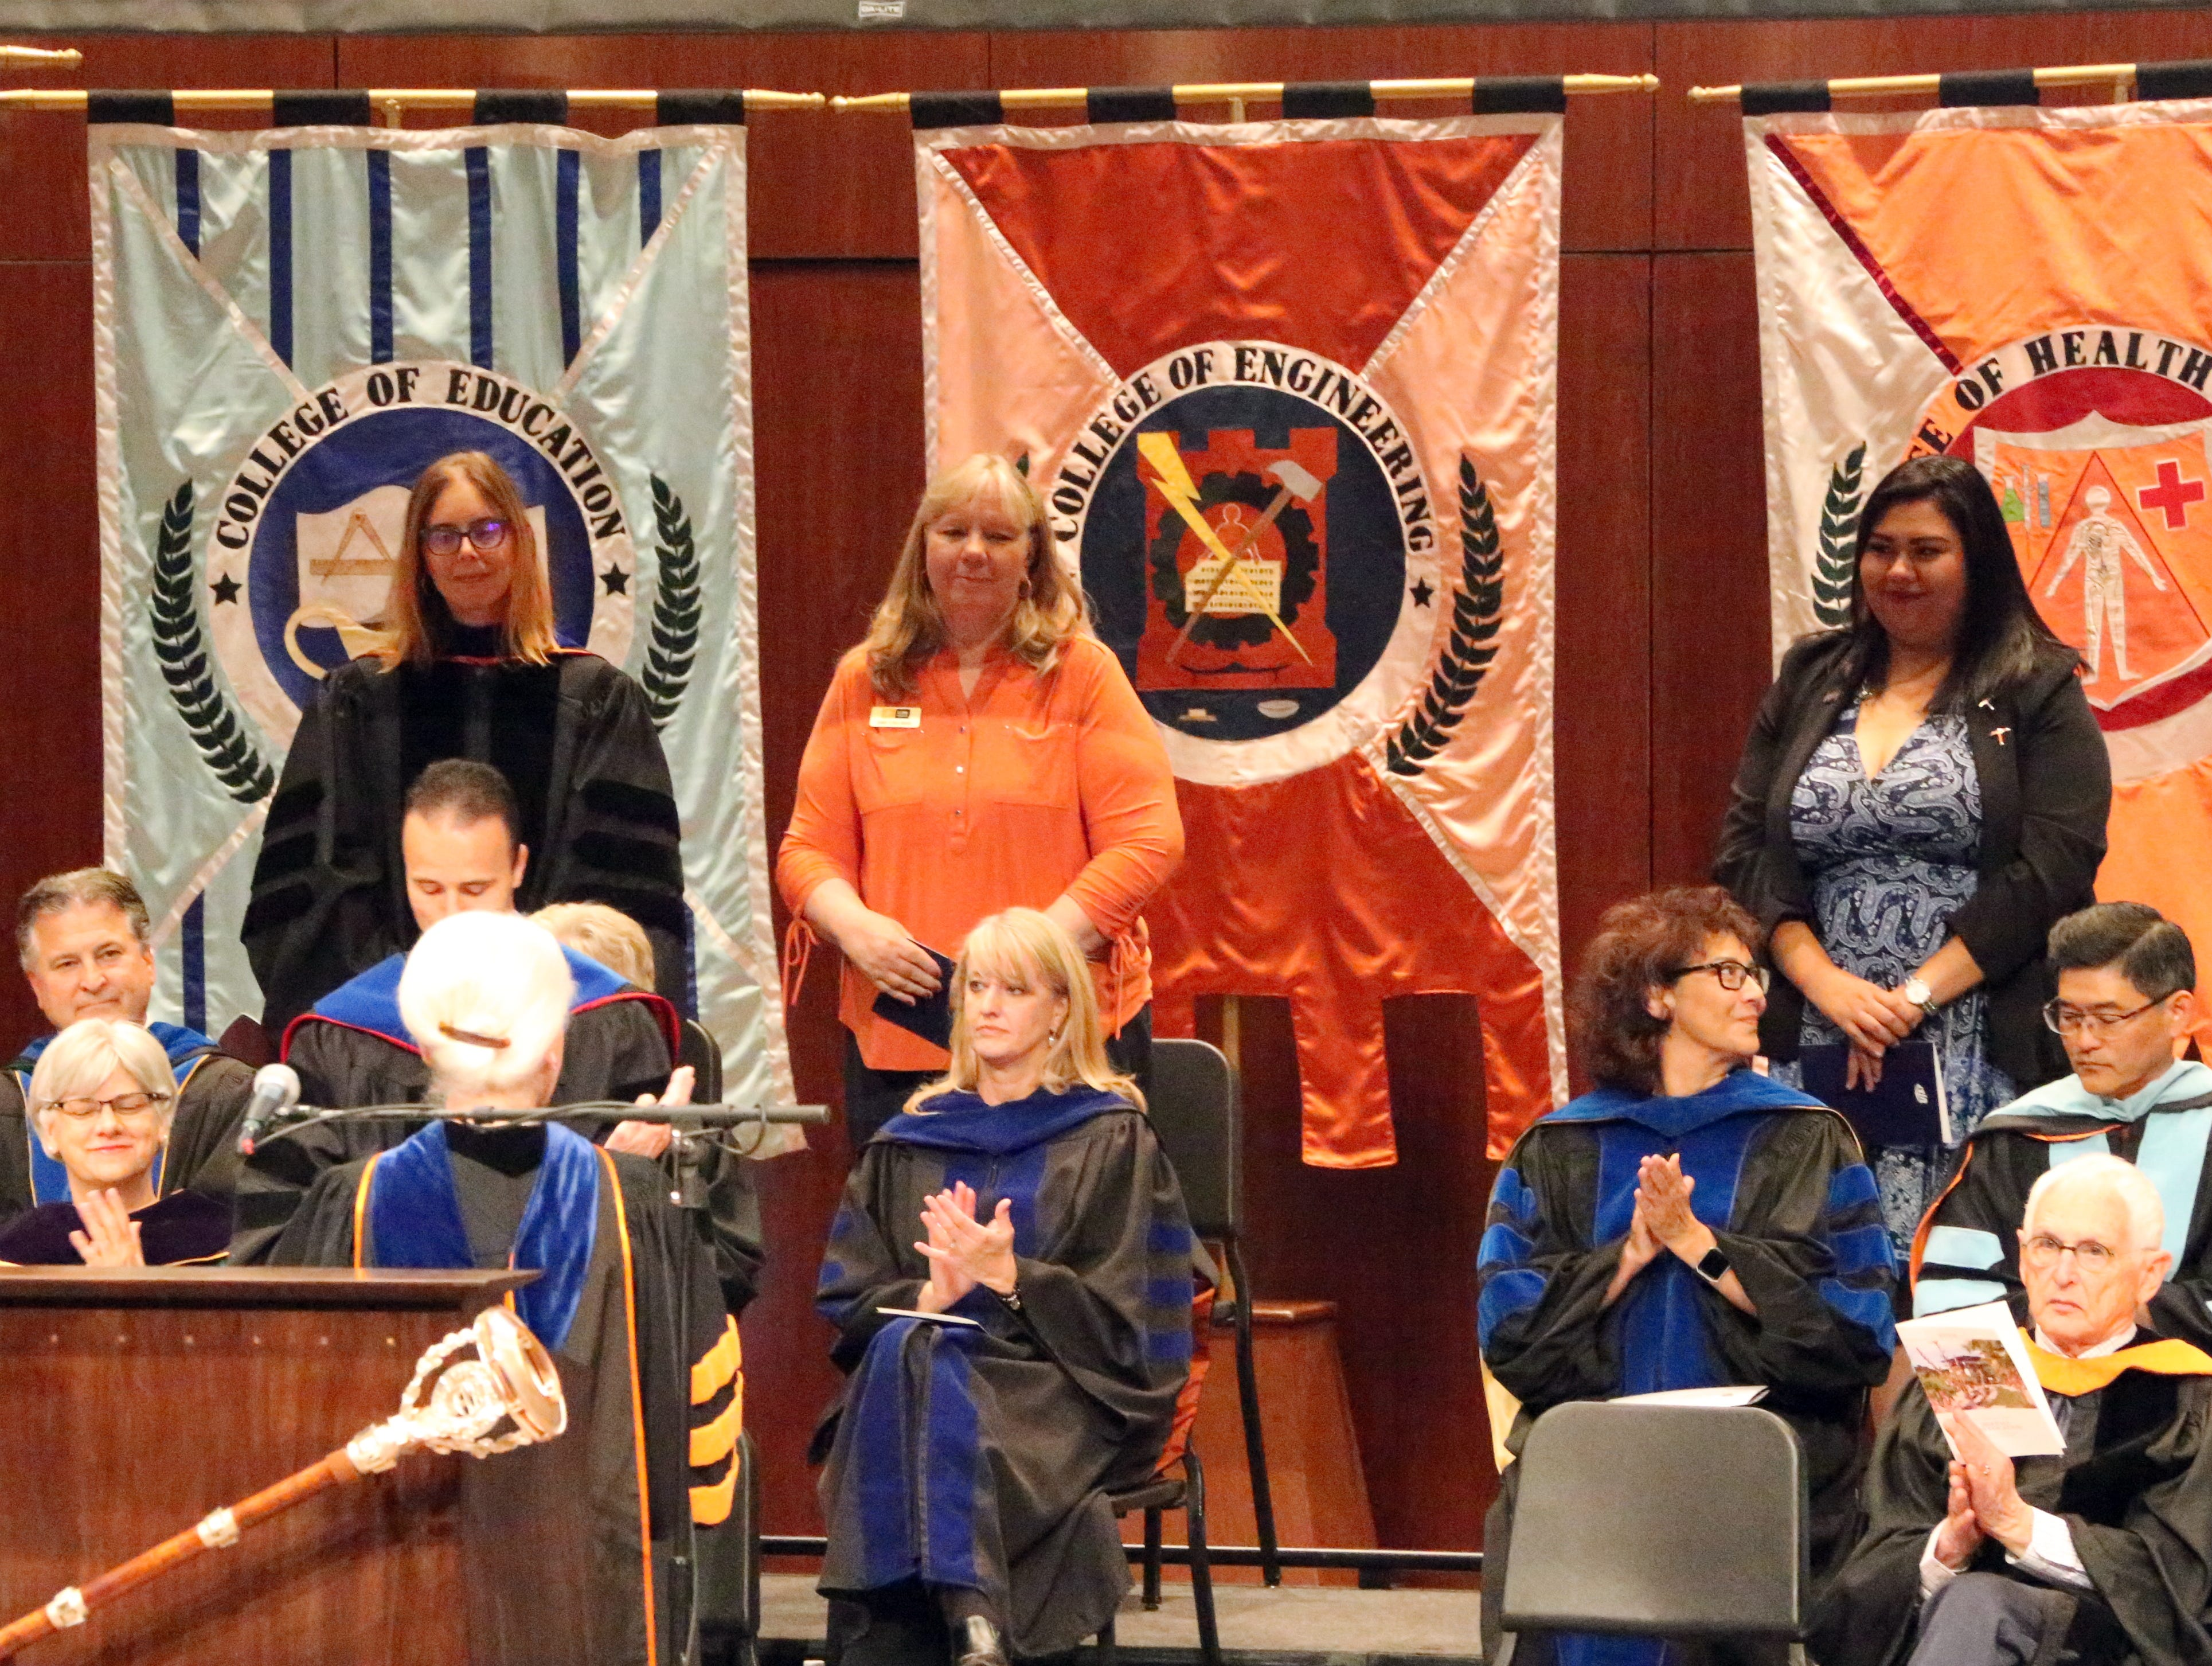 UTEP president Diana Nataliciio introduces special guests at the 2018 Fall Convocation Thursday on the UTEP campus.